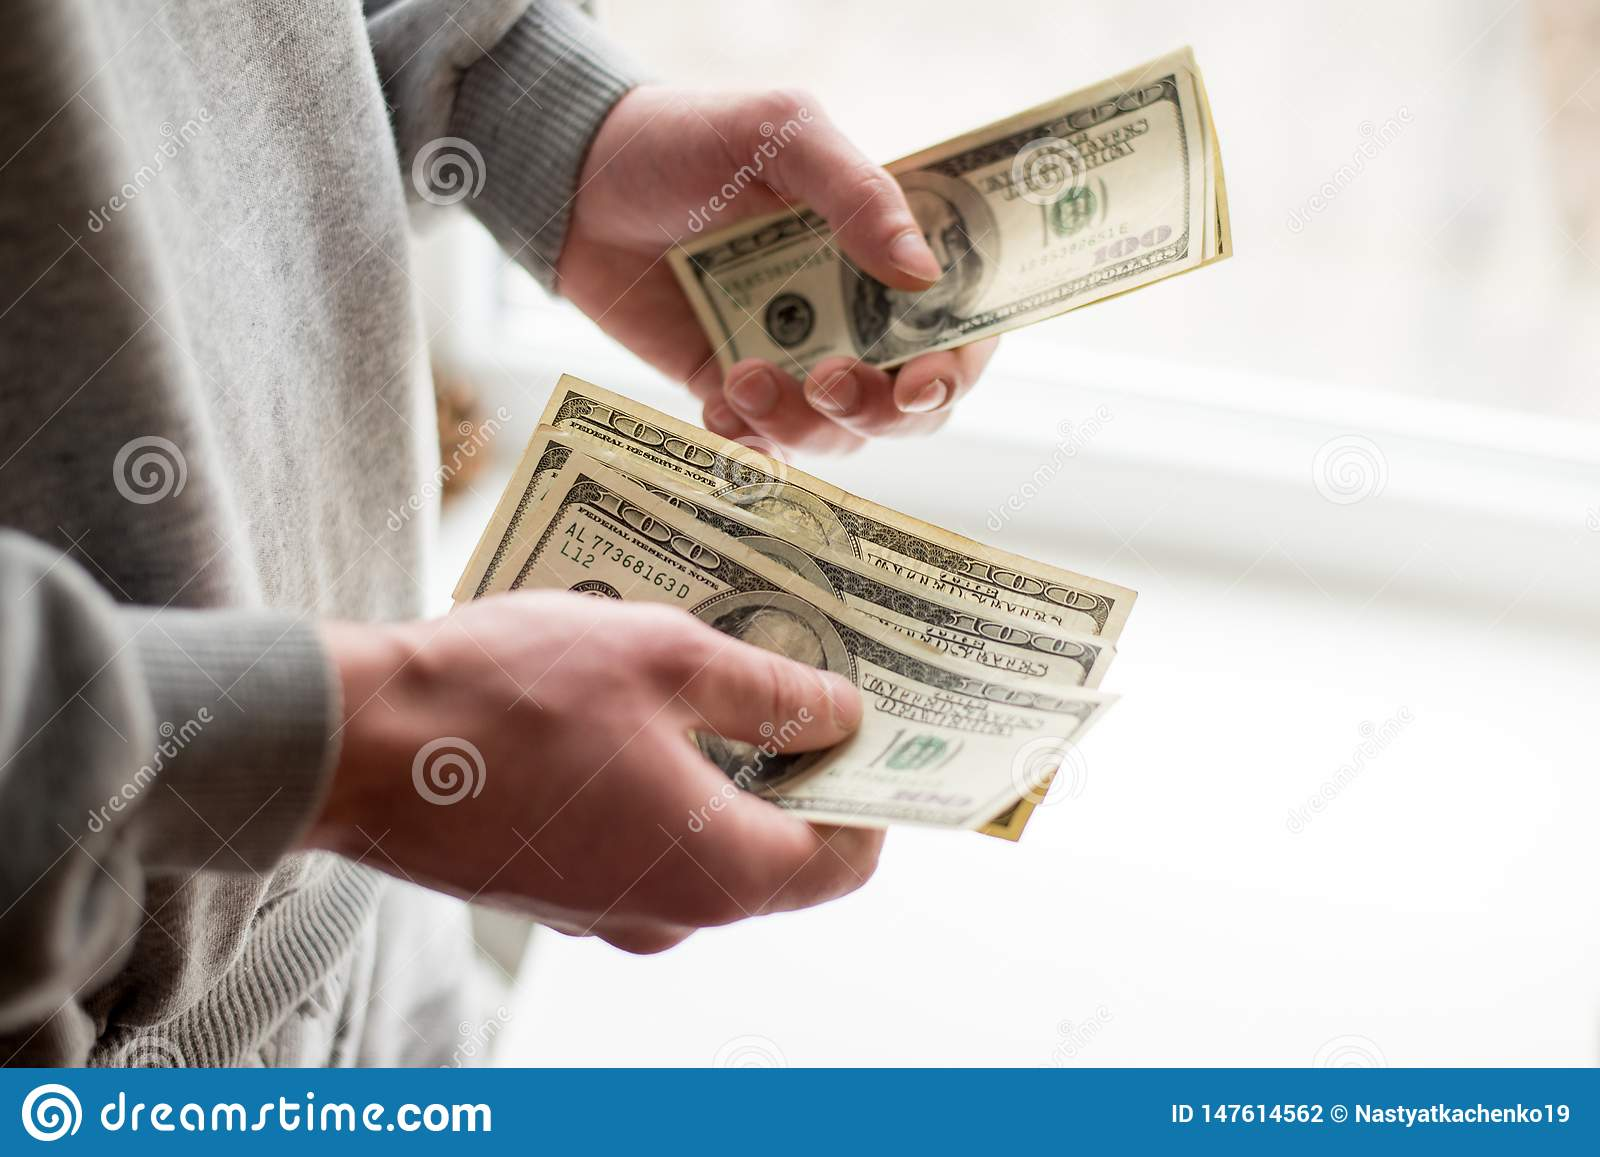 Cash in hands. Profits, savings. Stack of dollars. Man counting money. Dollars in man`s hands. Success, motivation, financial